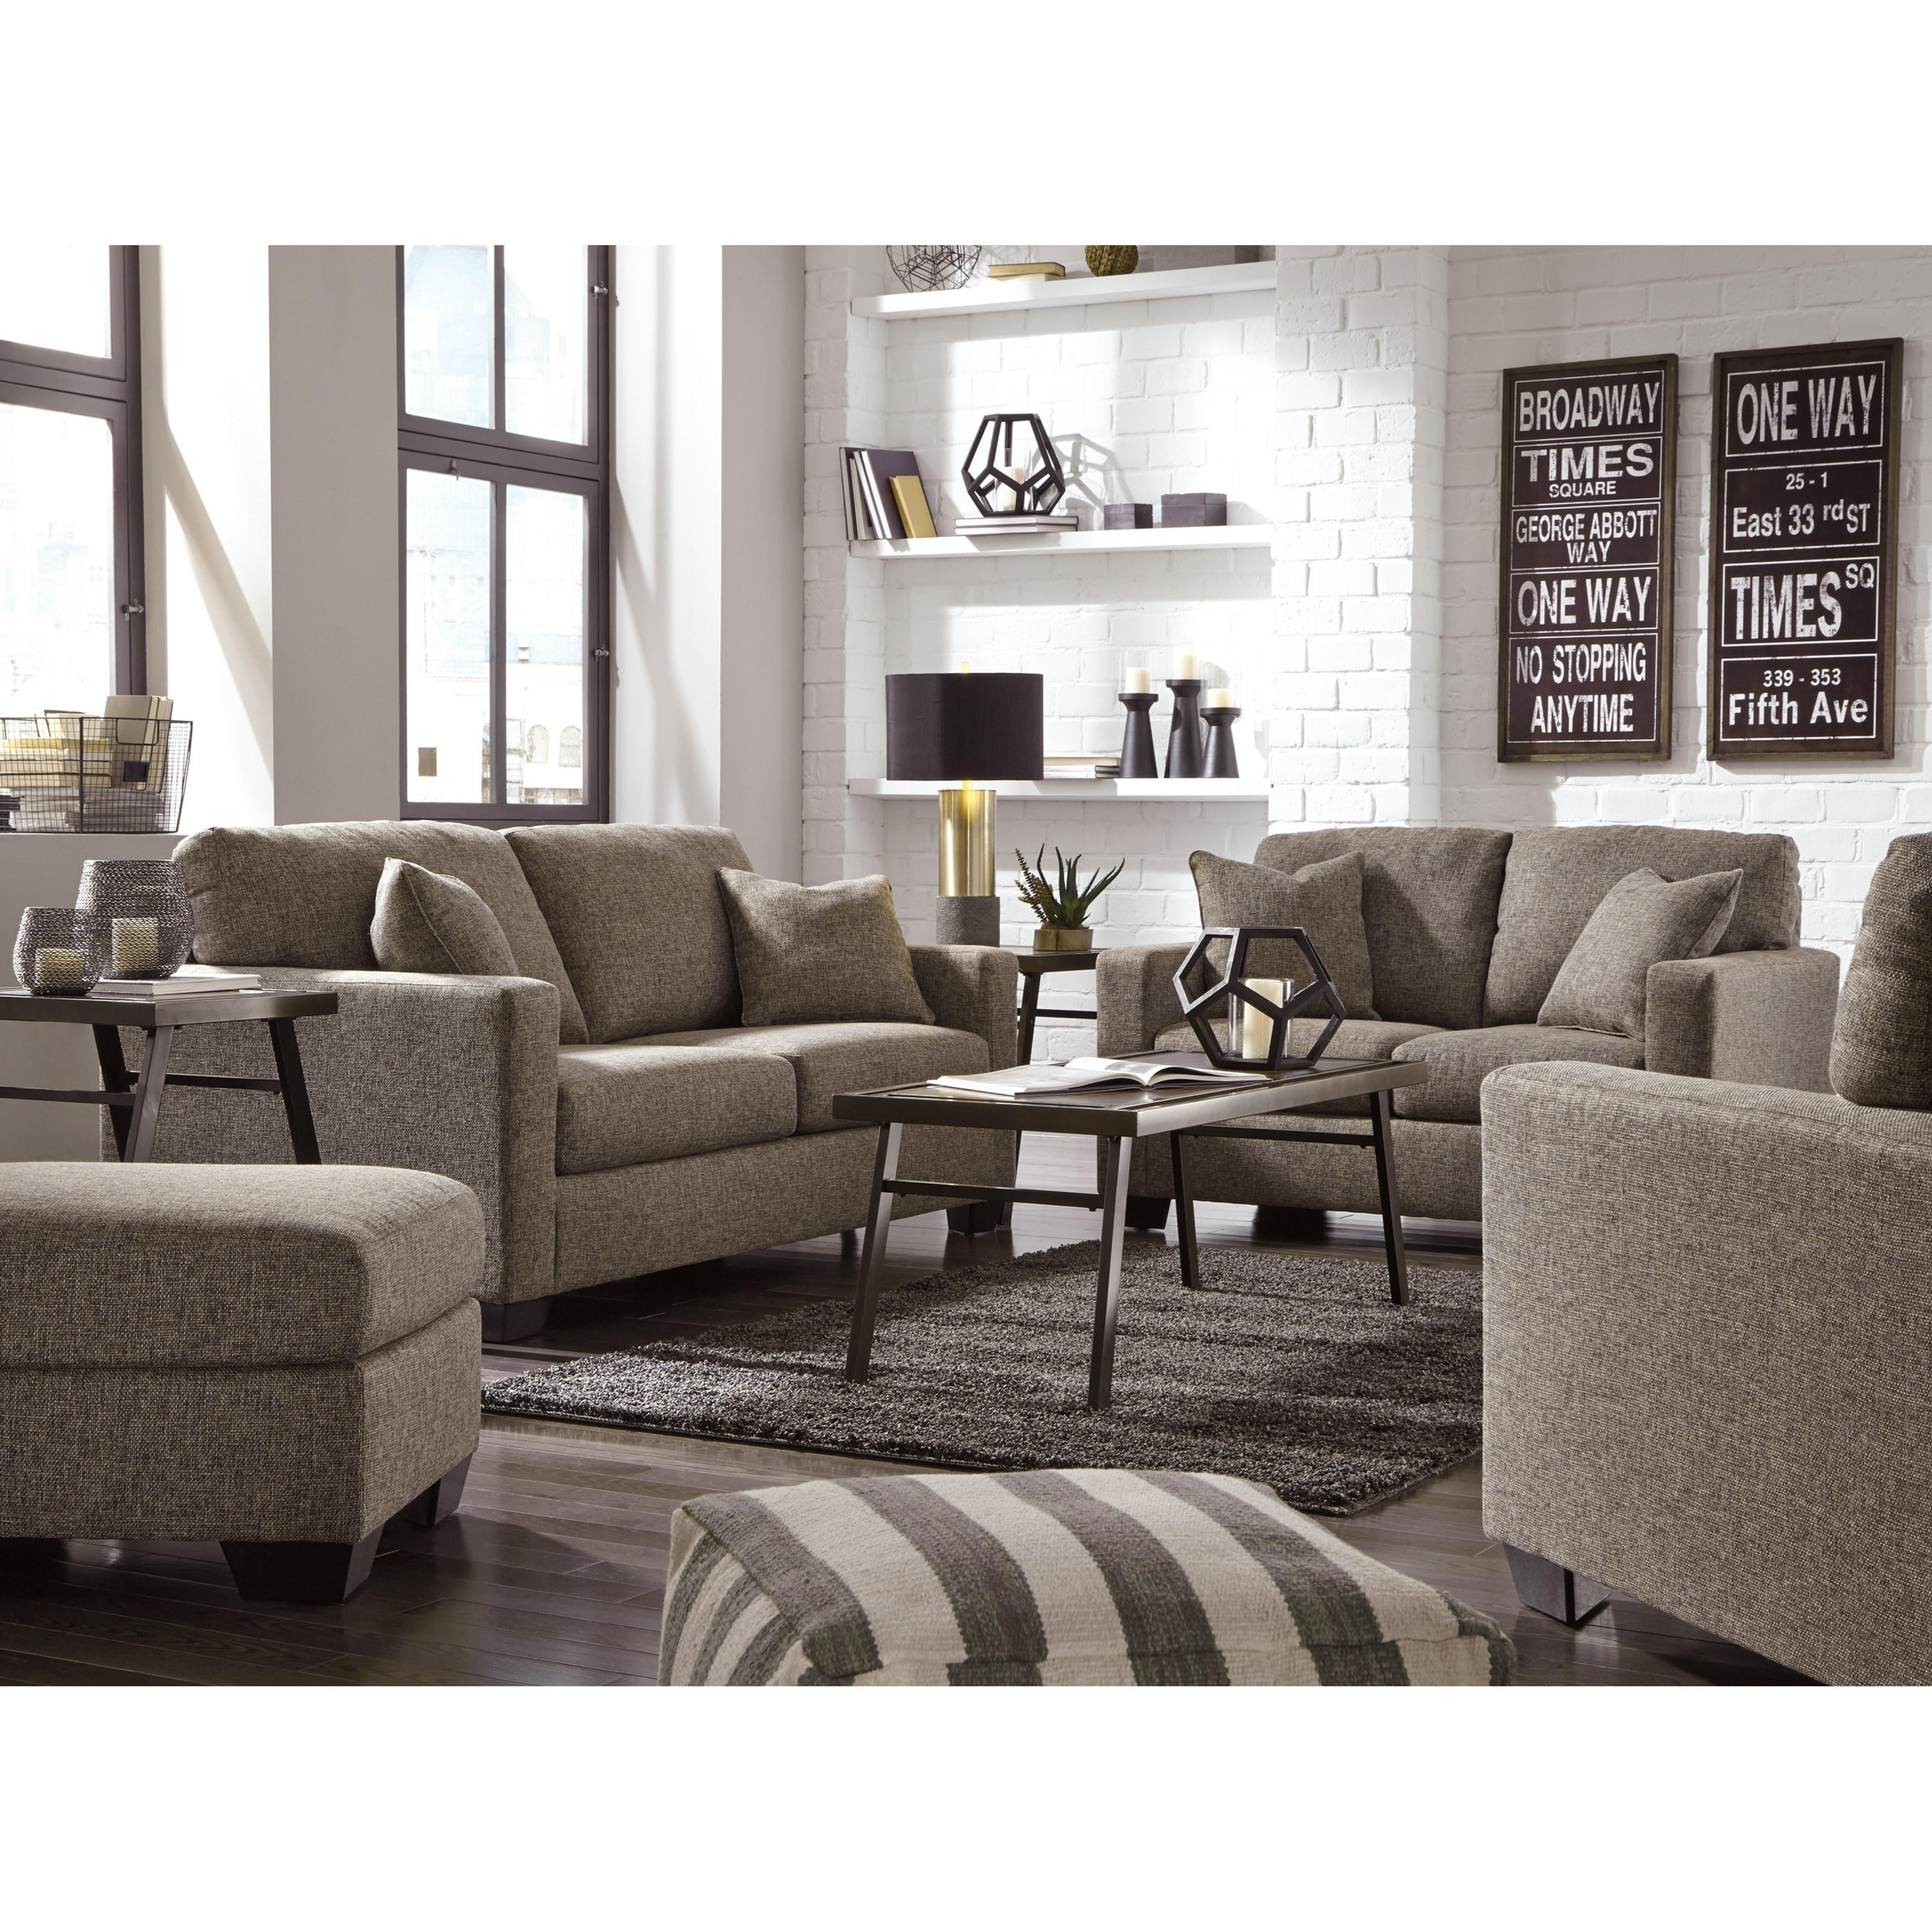 Ashley furniture hearne contemporary chair ottoman - Ashley furniture 14 piece living room sale ...